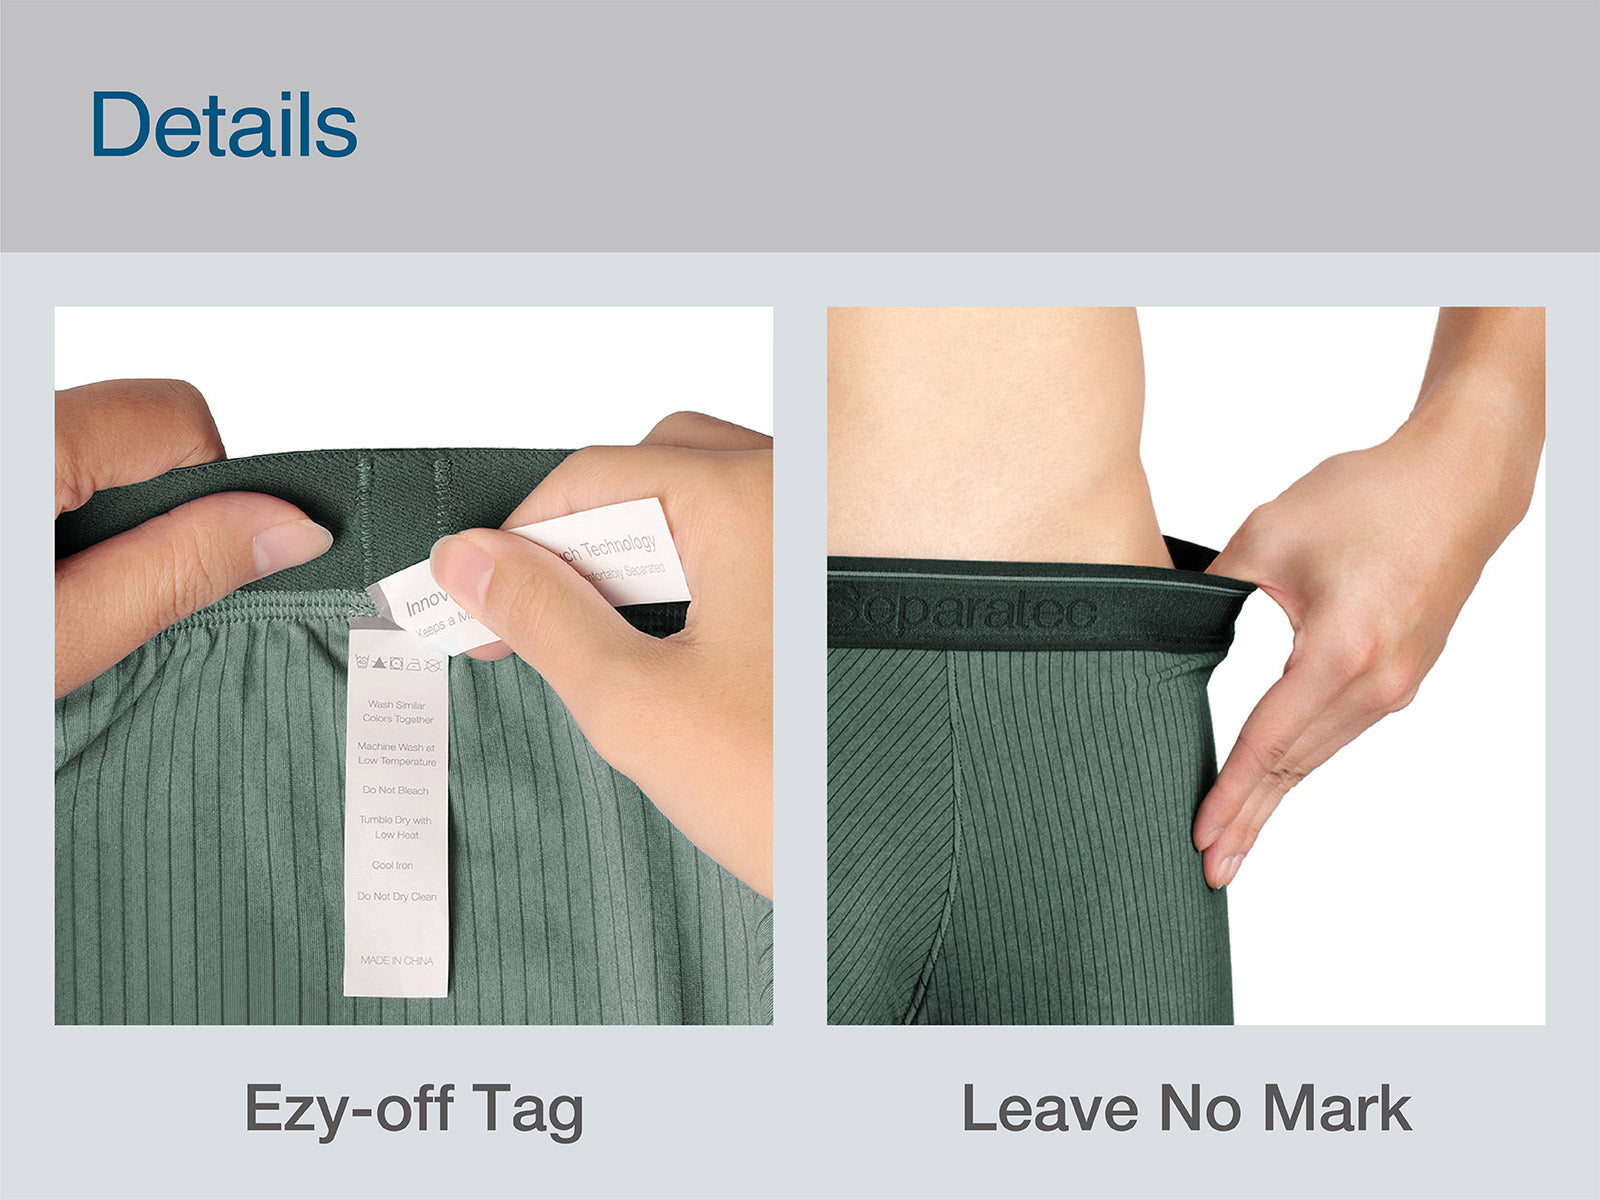 Separatec 2 Pouch underwear, Innovative Daul Pouch Patent Technology, Ezy-off tag, leave no mark